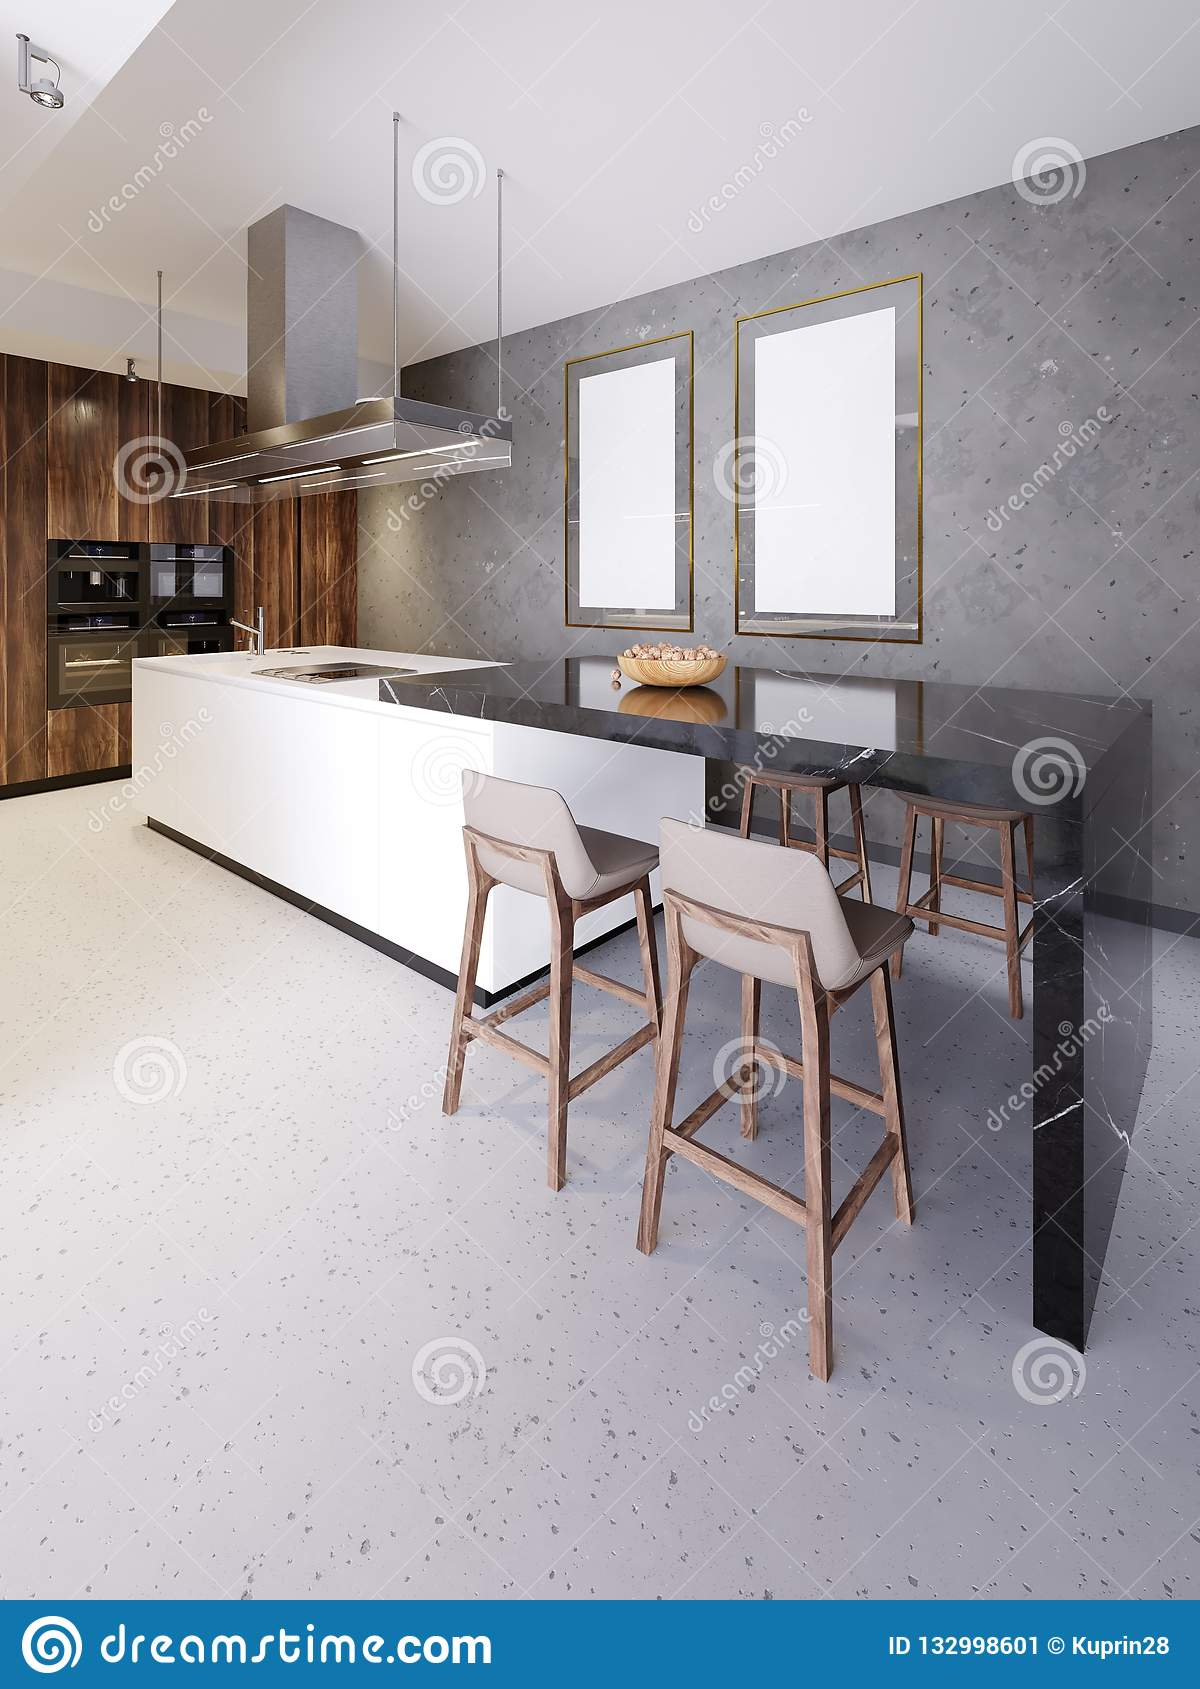 Contemporary Kitchen Interior With Brown And White Furniture Design